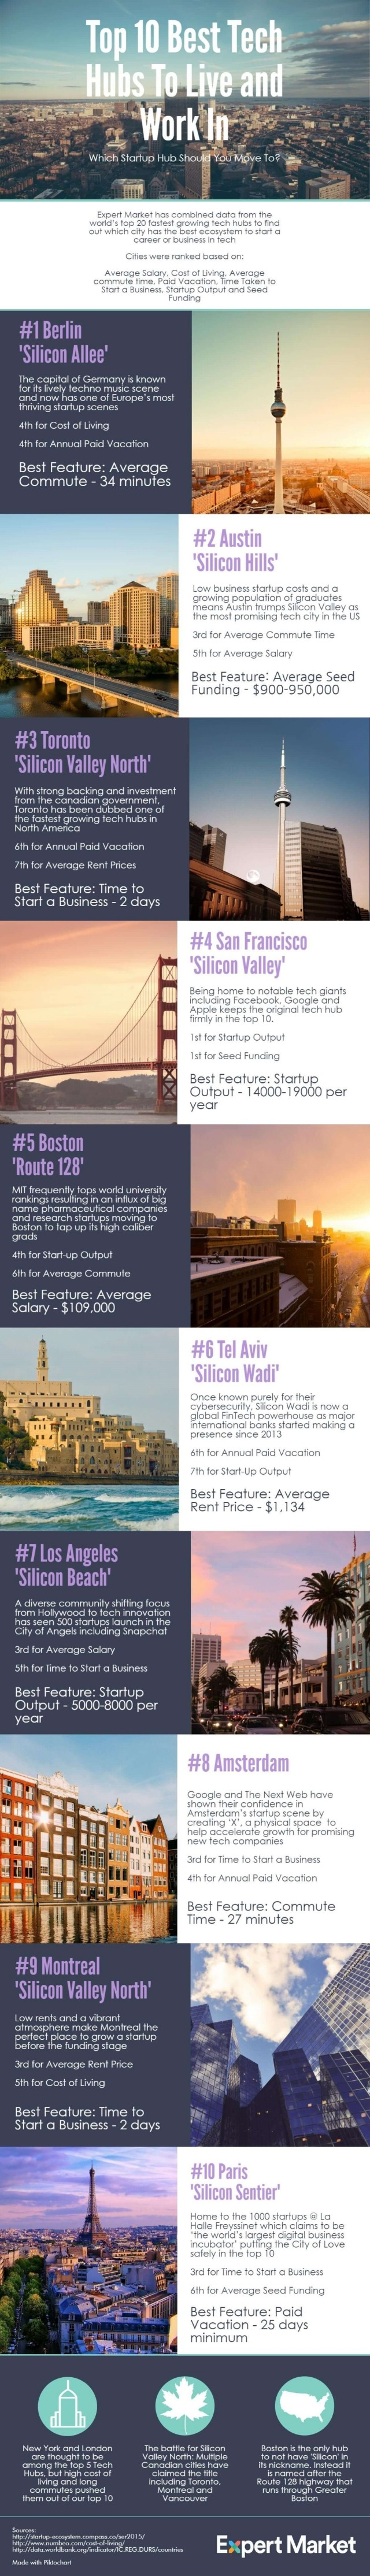 10 Best Tech Hubs In The World To Live & Work's infographic